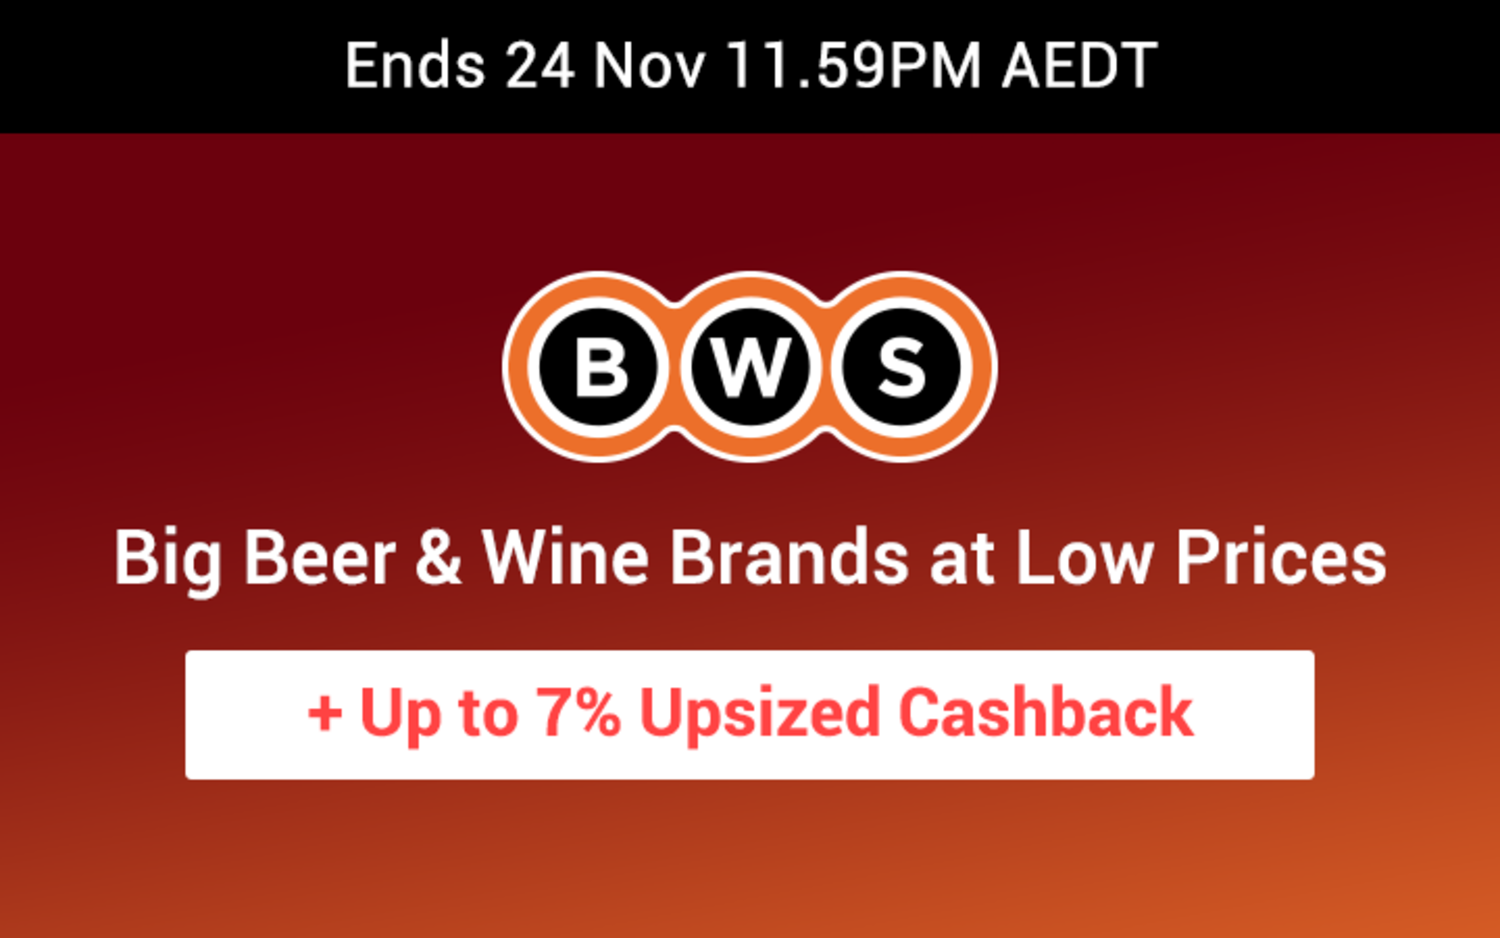 BWS - Up to 7% Upsized Cashback